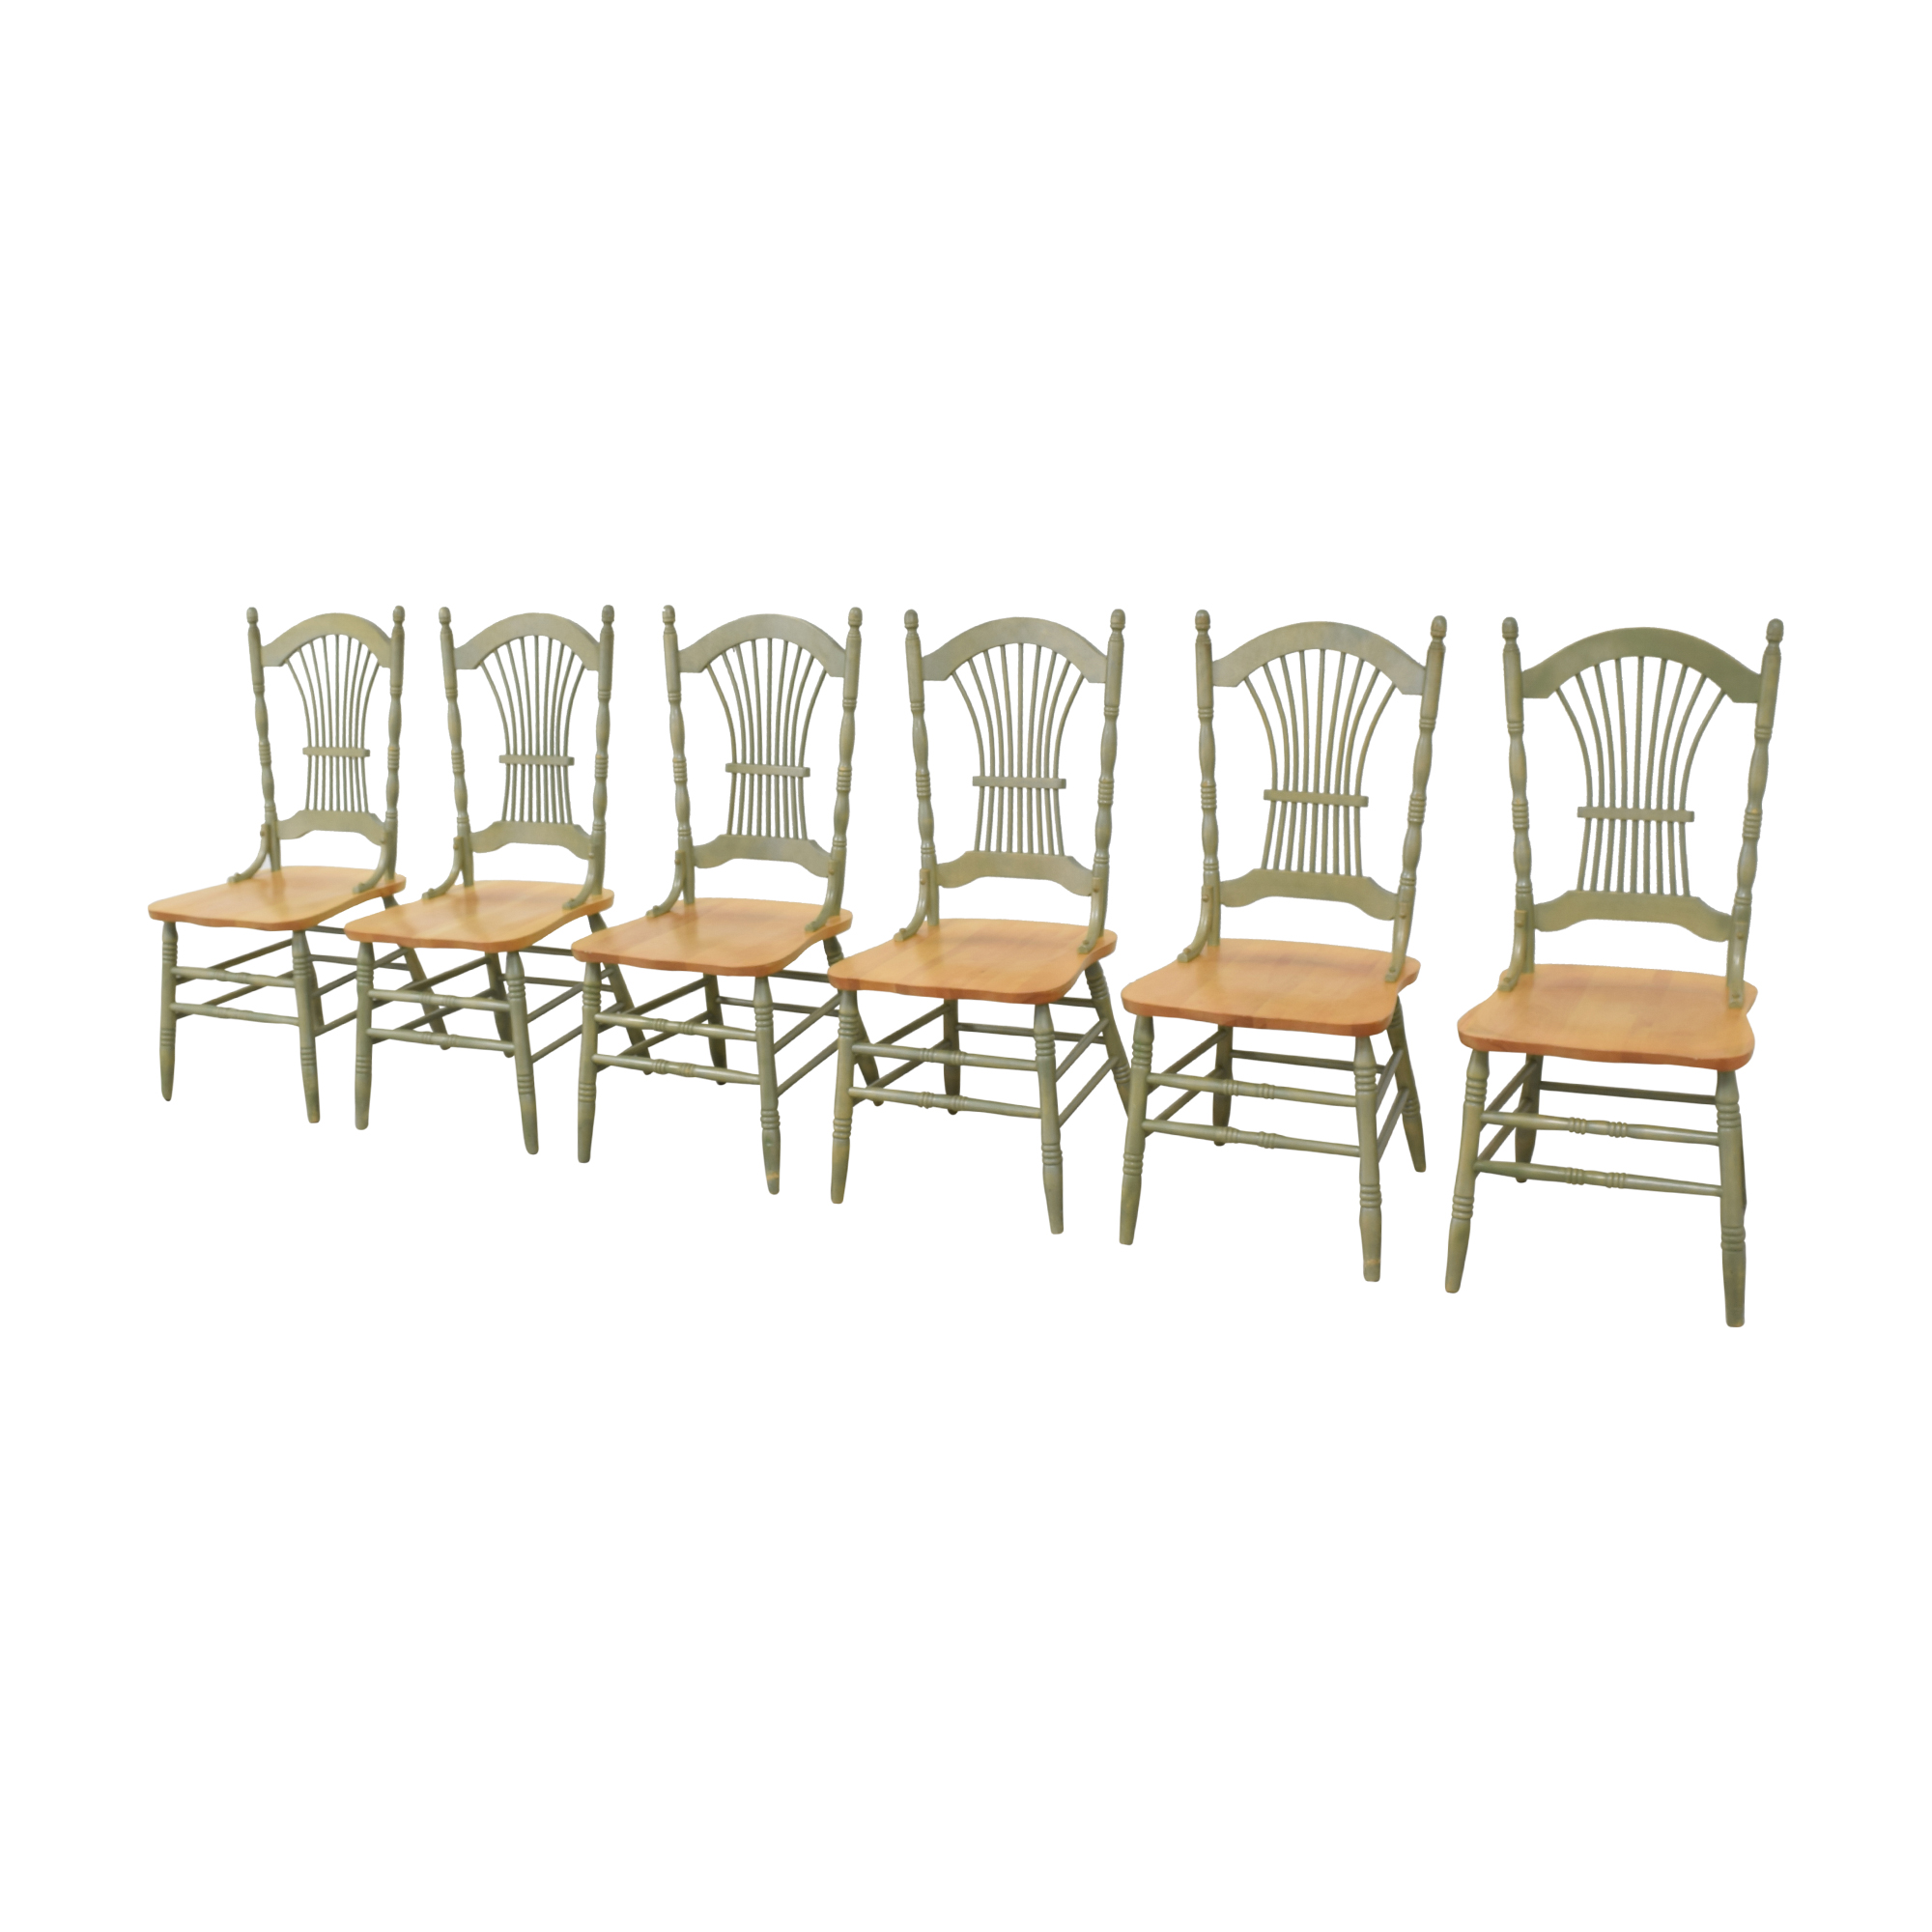 Canadel Canadel Sheaf Back Dining Chairs for sale